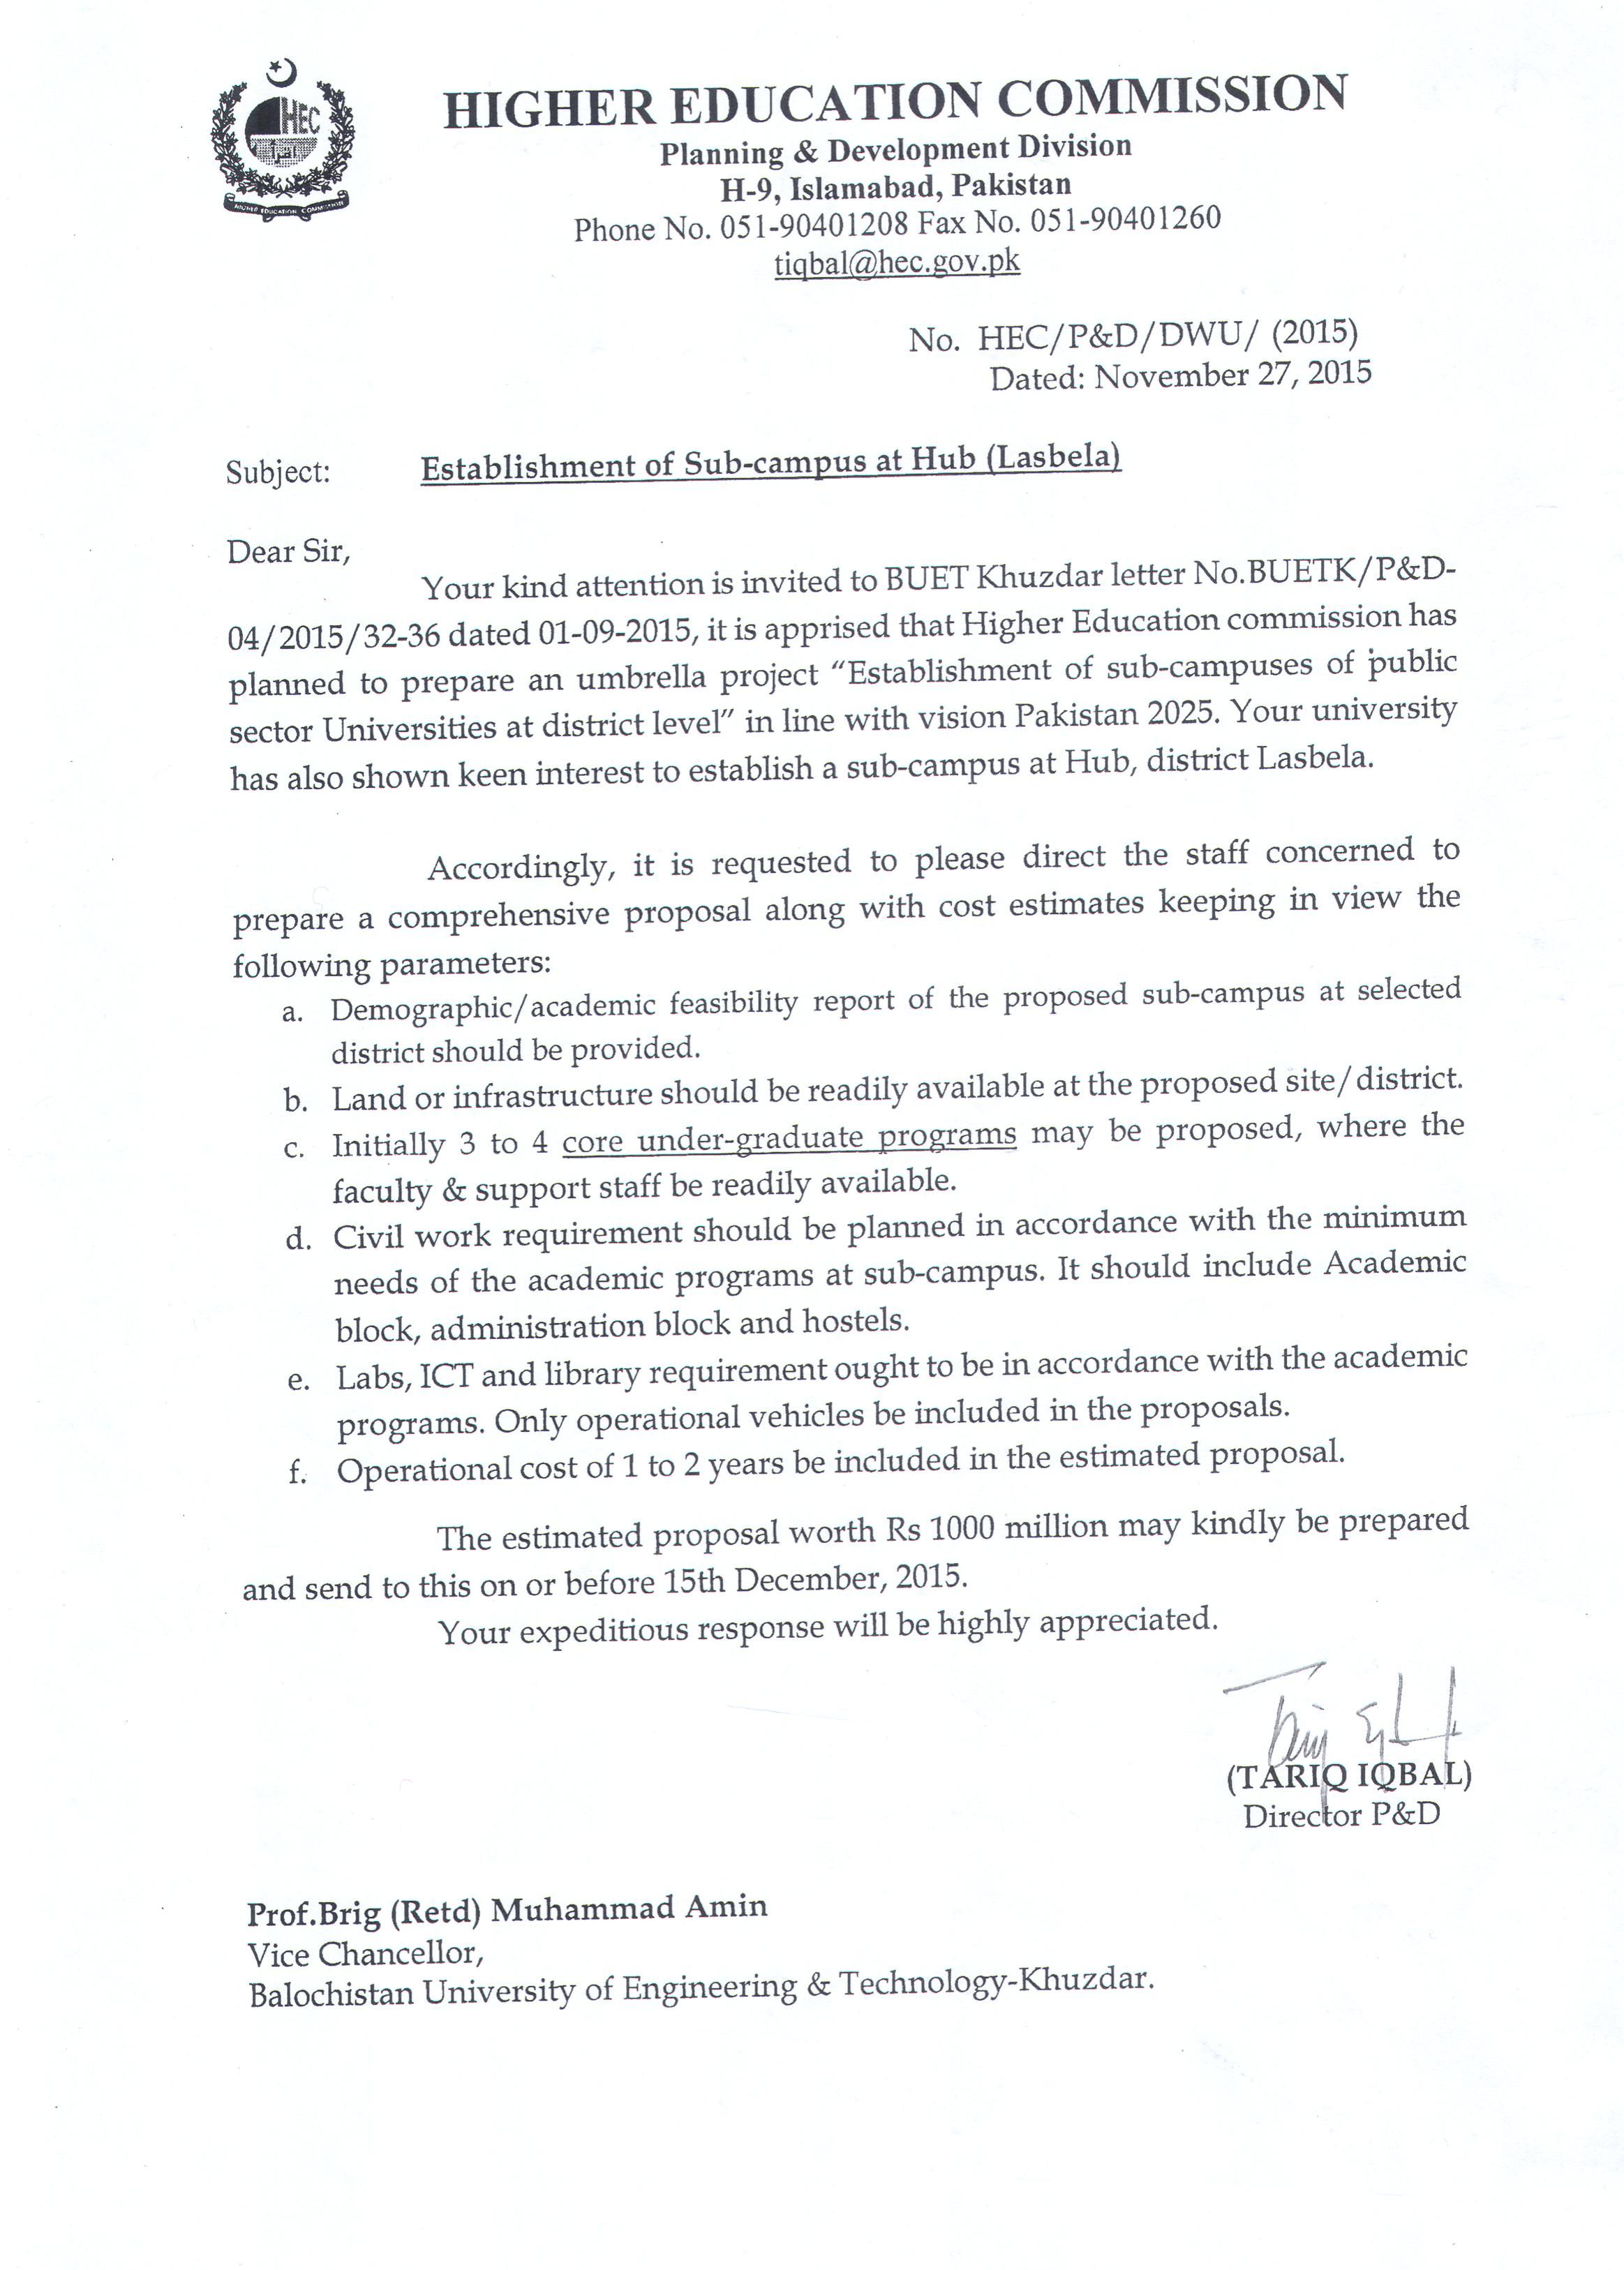 Appointment letter meaning kannada notification for format page appointment letter meaning kannada notification for format page calendar stopboris Image collections